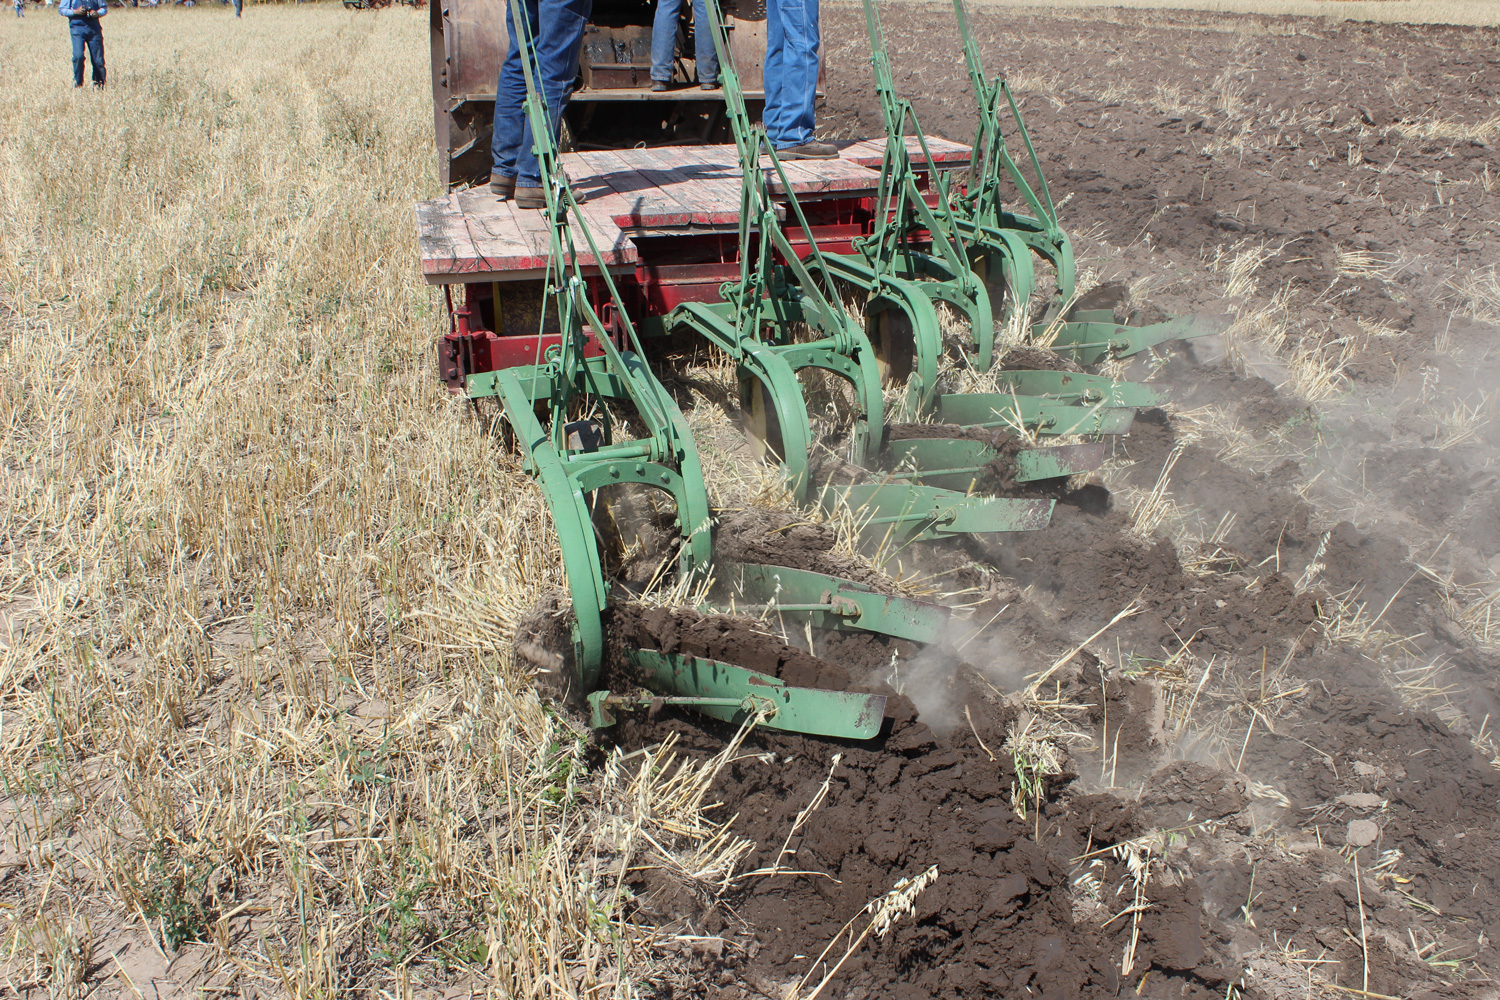 The John Deere plow is doing well in the dry Montana soil. This grain stubble is not as difficult to plow as the original Prairie sod, which was tramped by the mighty bison herds.  Photo Luke Steinberger